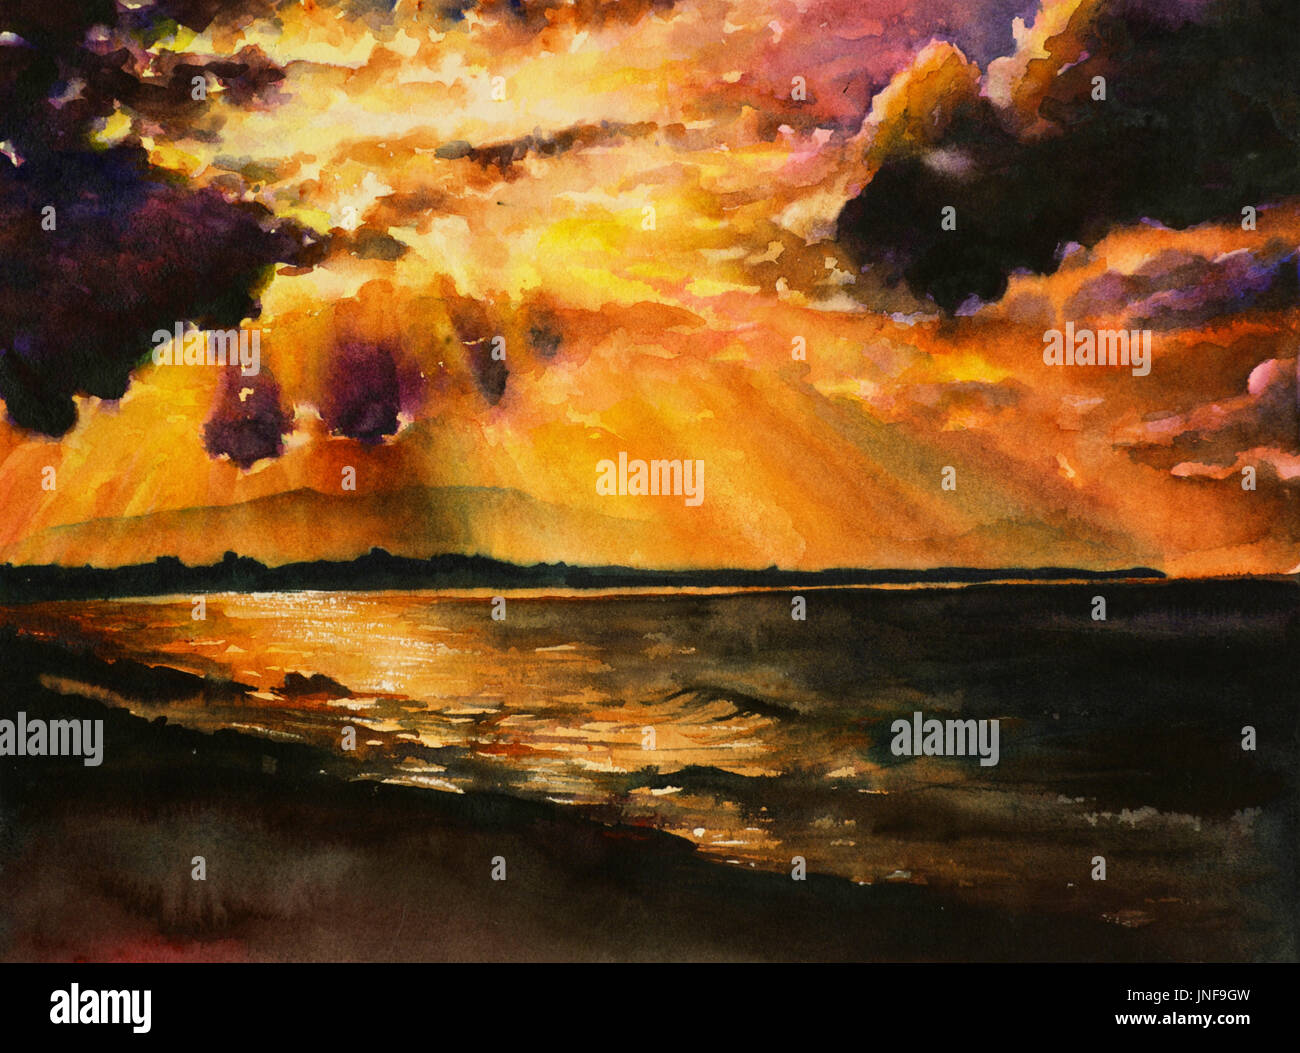 Fine Art Watercolor Painting Of Dramatic Sunset Over Lake On South Island New Zealand Landscape